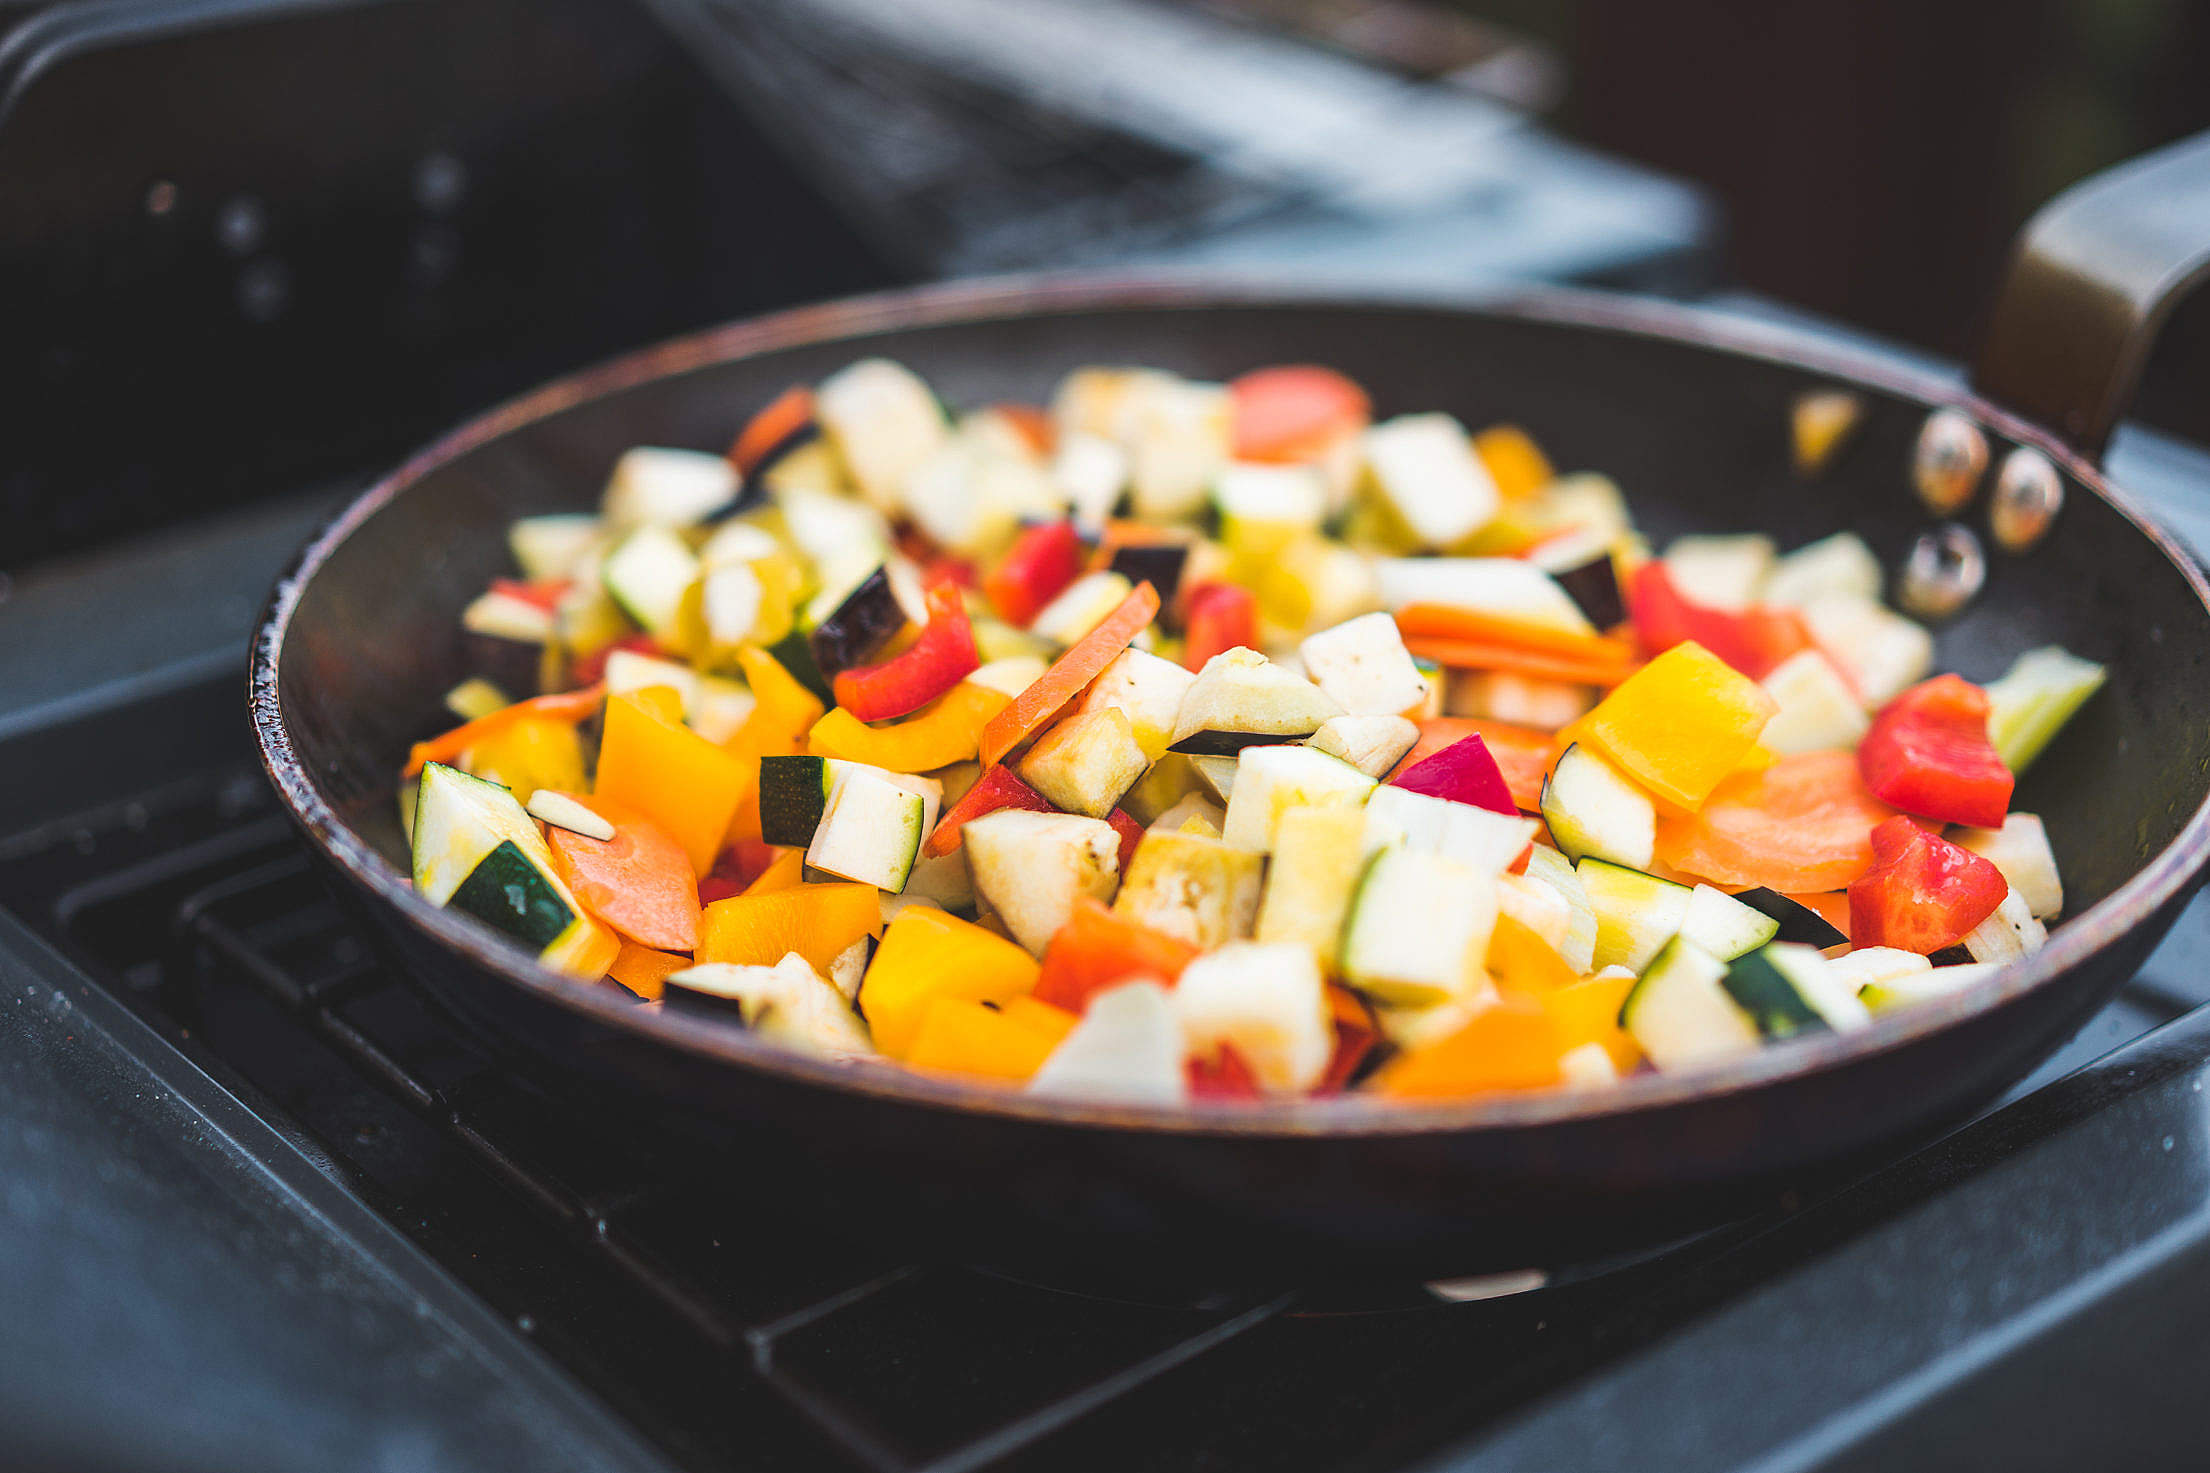 Stir Fried Vegetables in The Pan Free Stock Photo